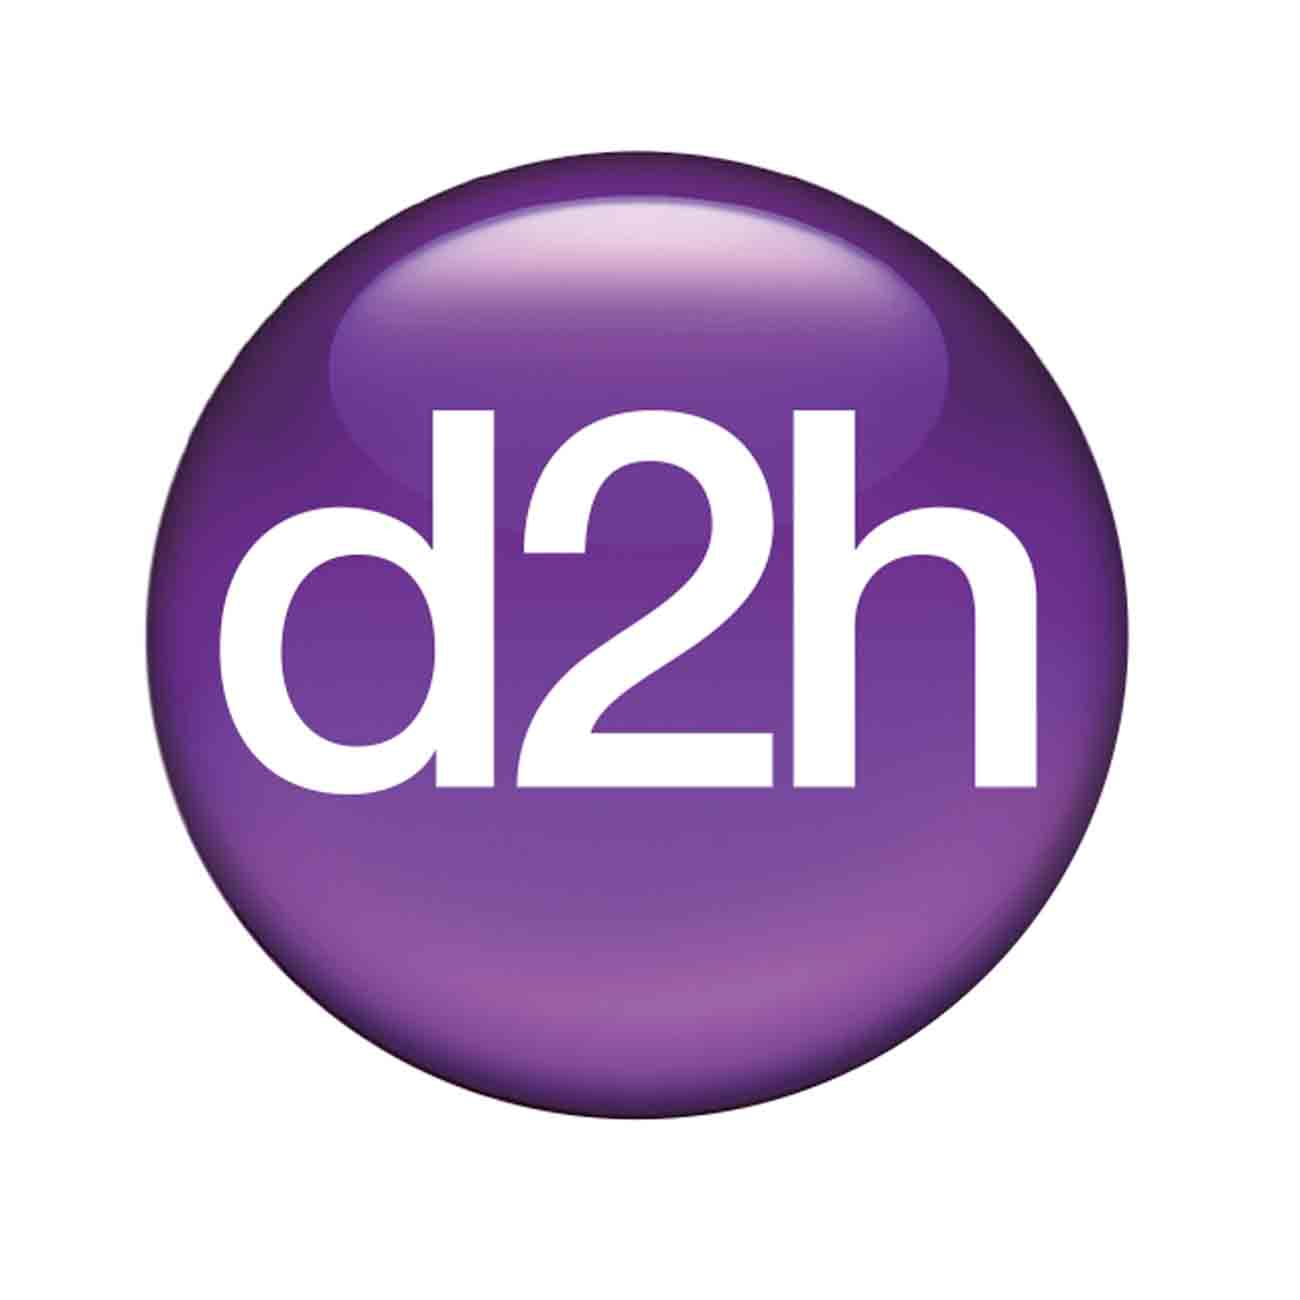 d2h active service Songdew TV is now chargeable